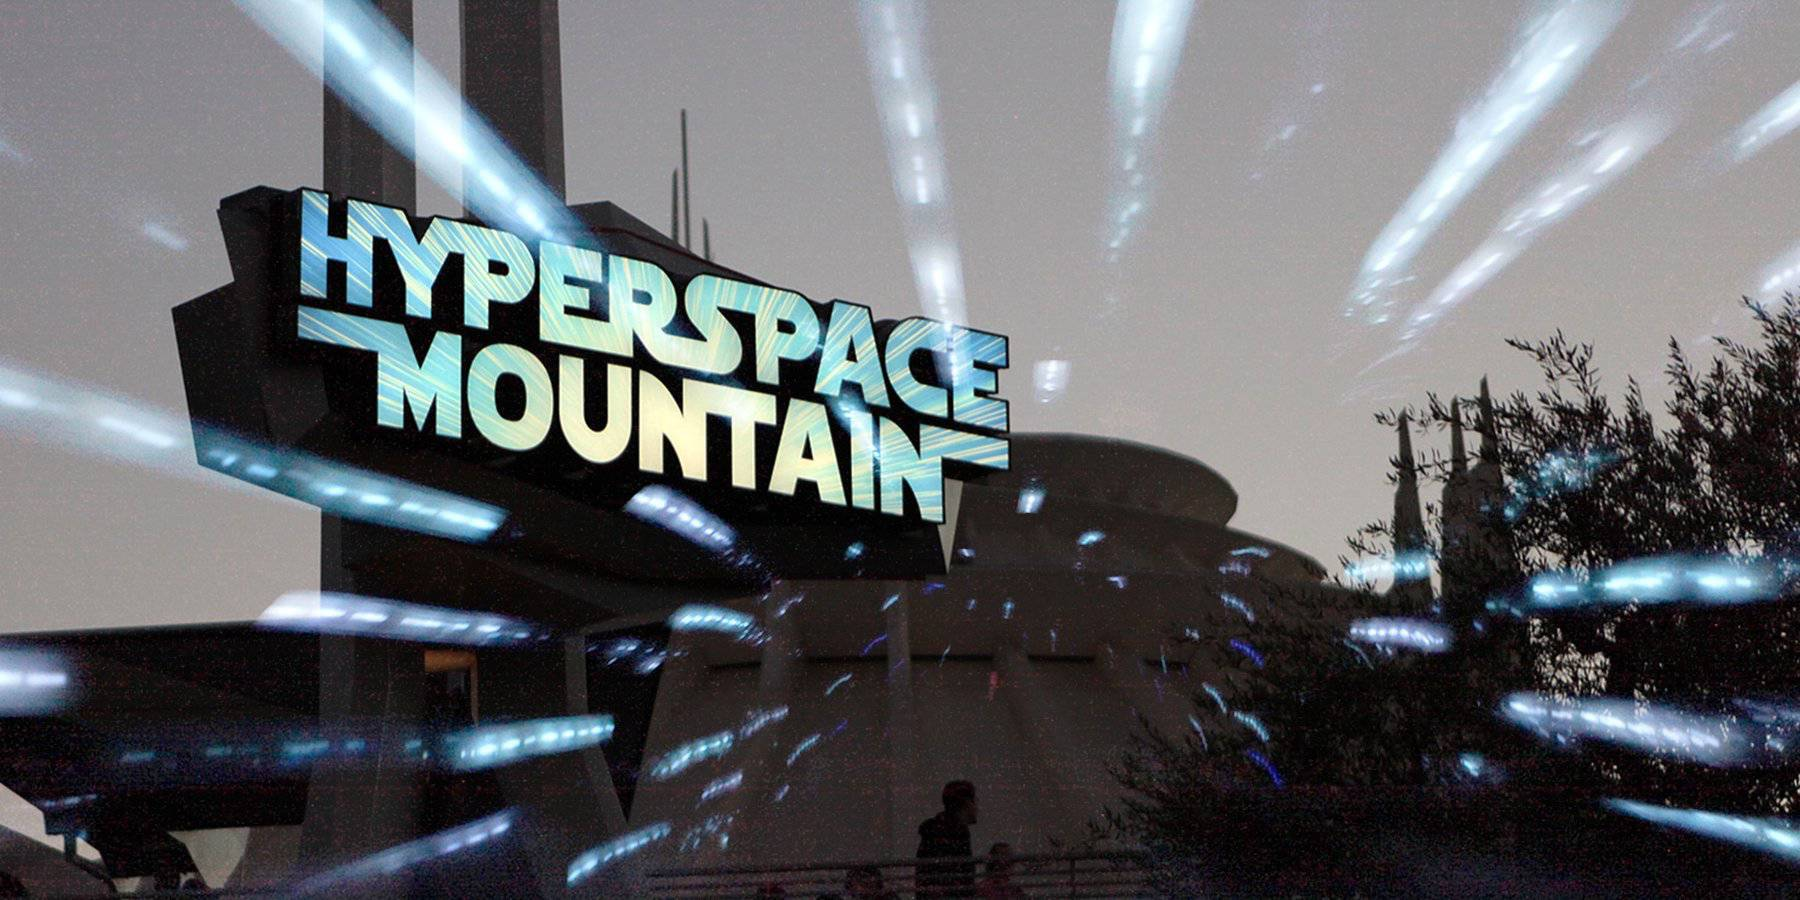 Ride Review: Hyperspace Mountain